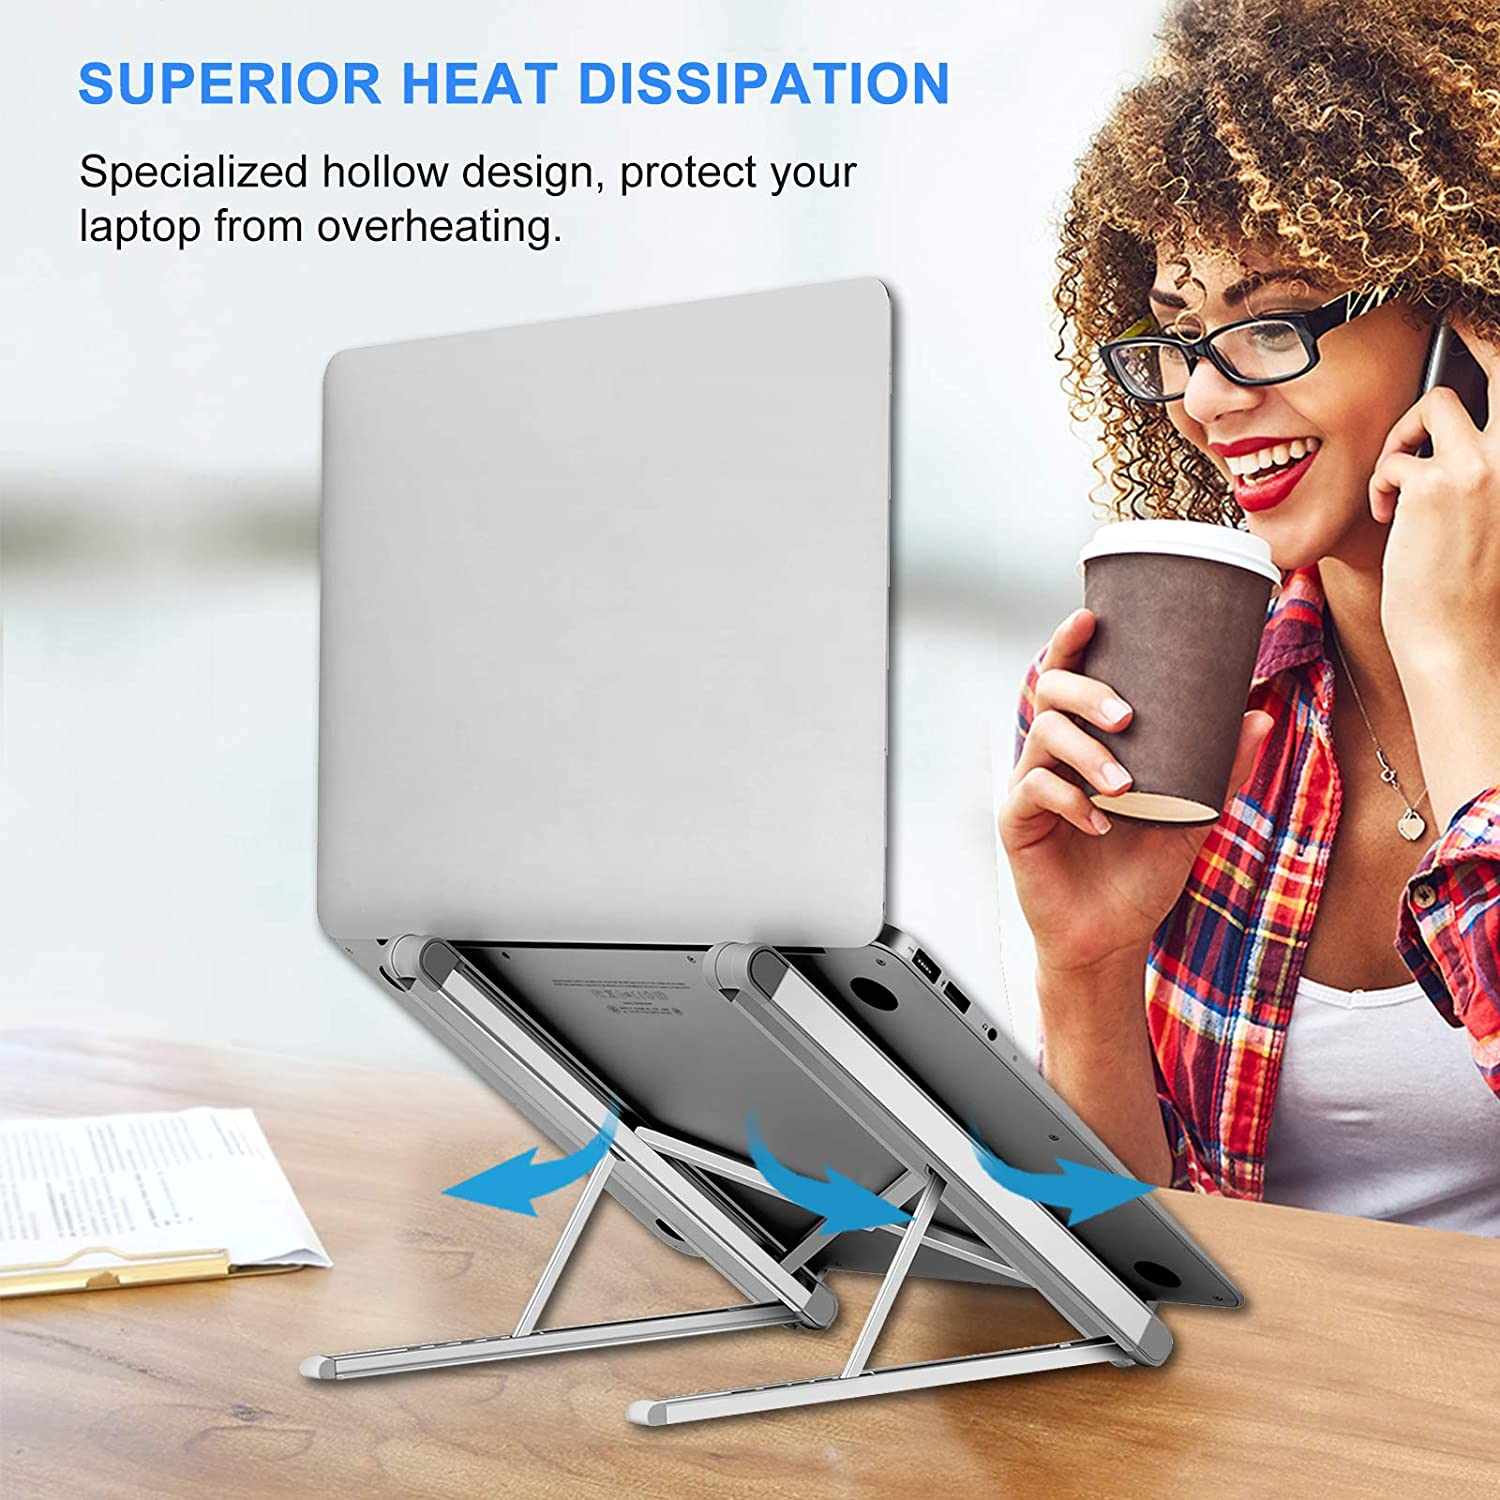 Ntech Portable Laptop and Tablet Stand